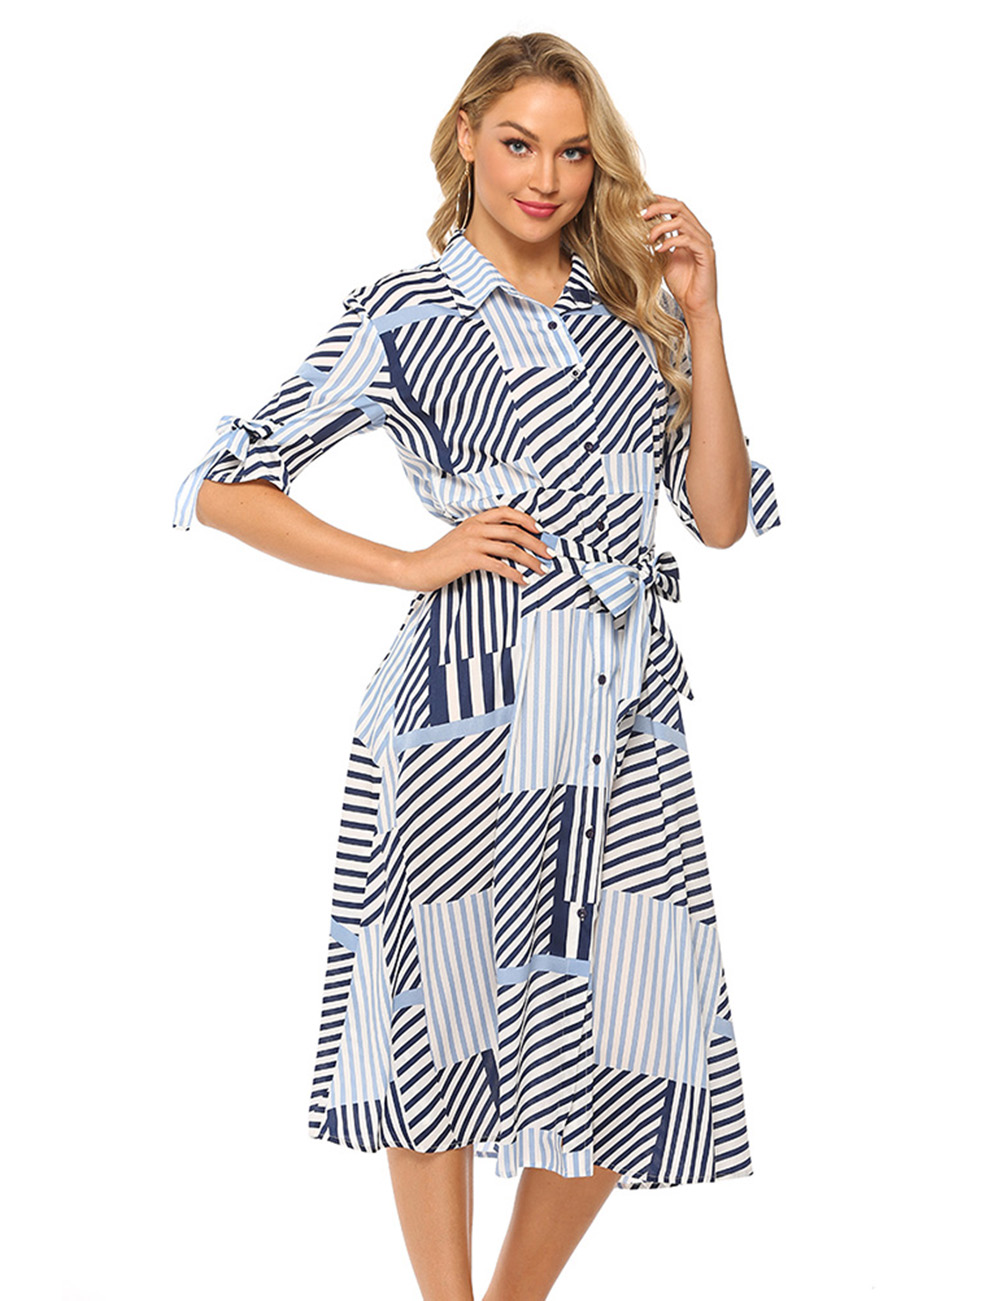 //cdn.affectcloud.com/feelingirldress/upload/imgs/2019-06-27/VZ190875-BU3/VZ190875-BU3-4.jpg